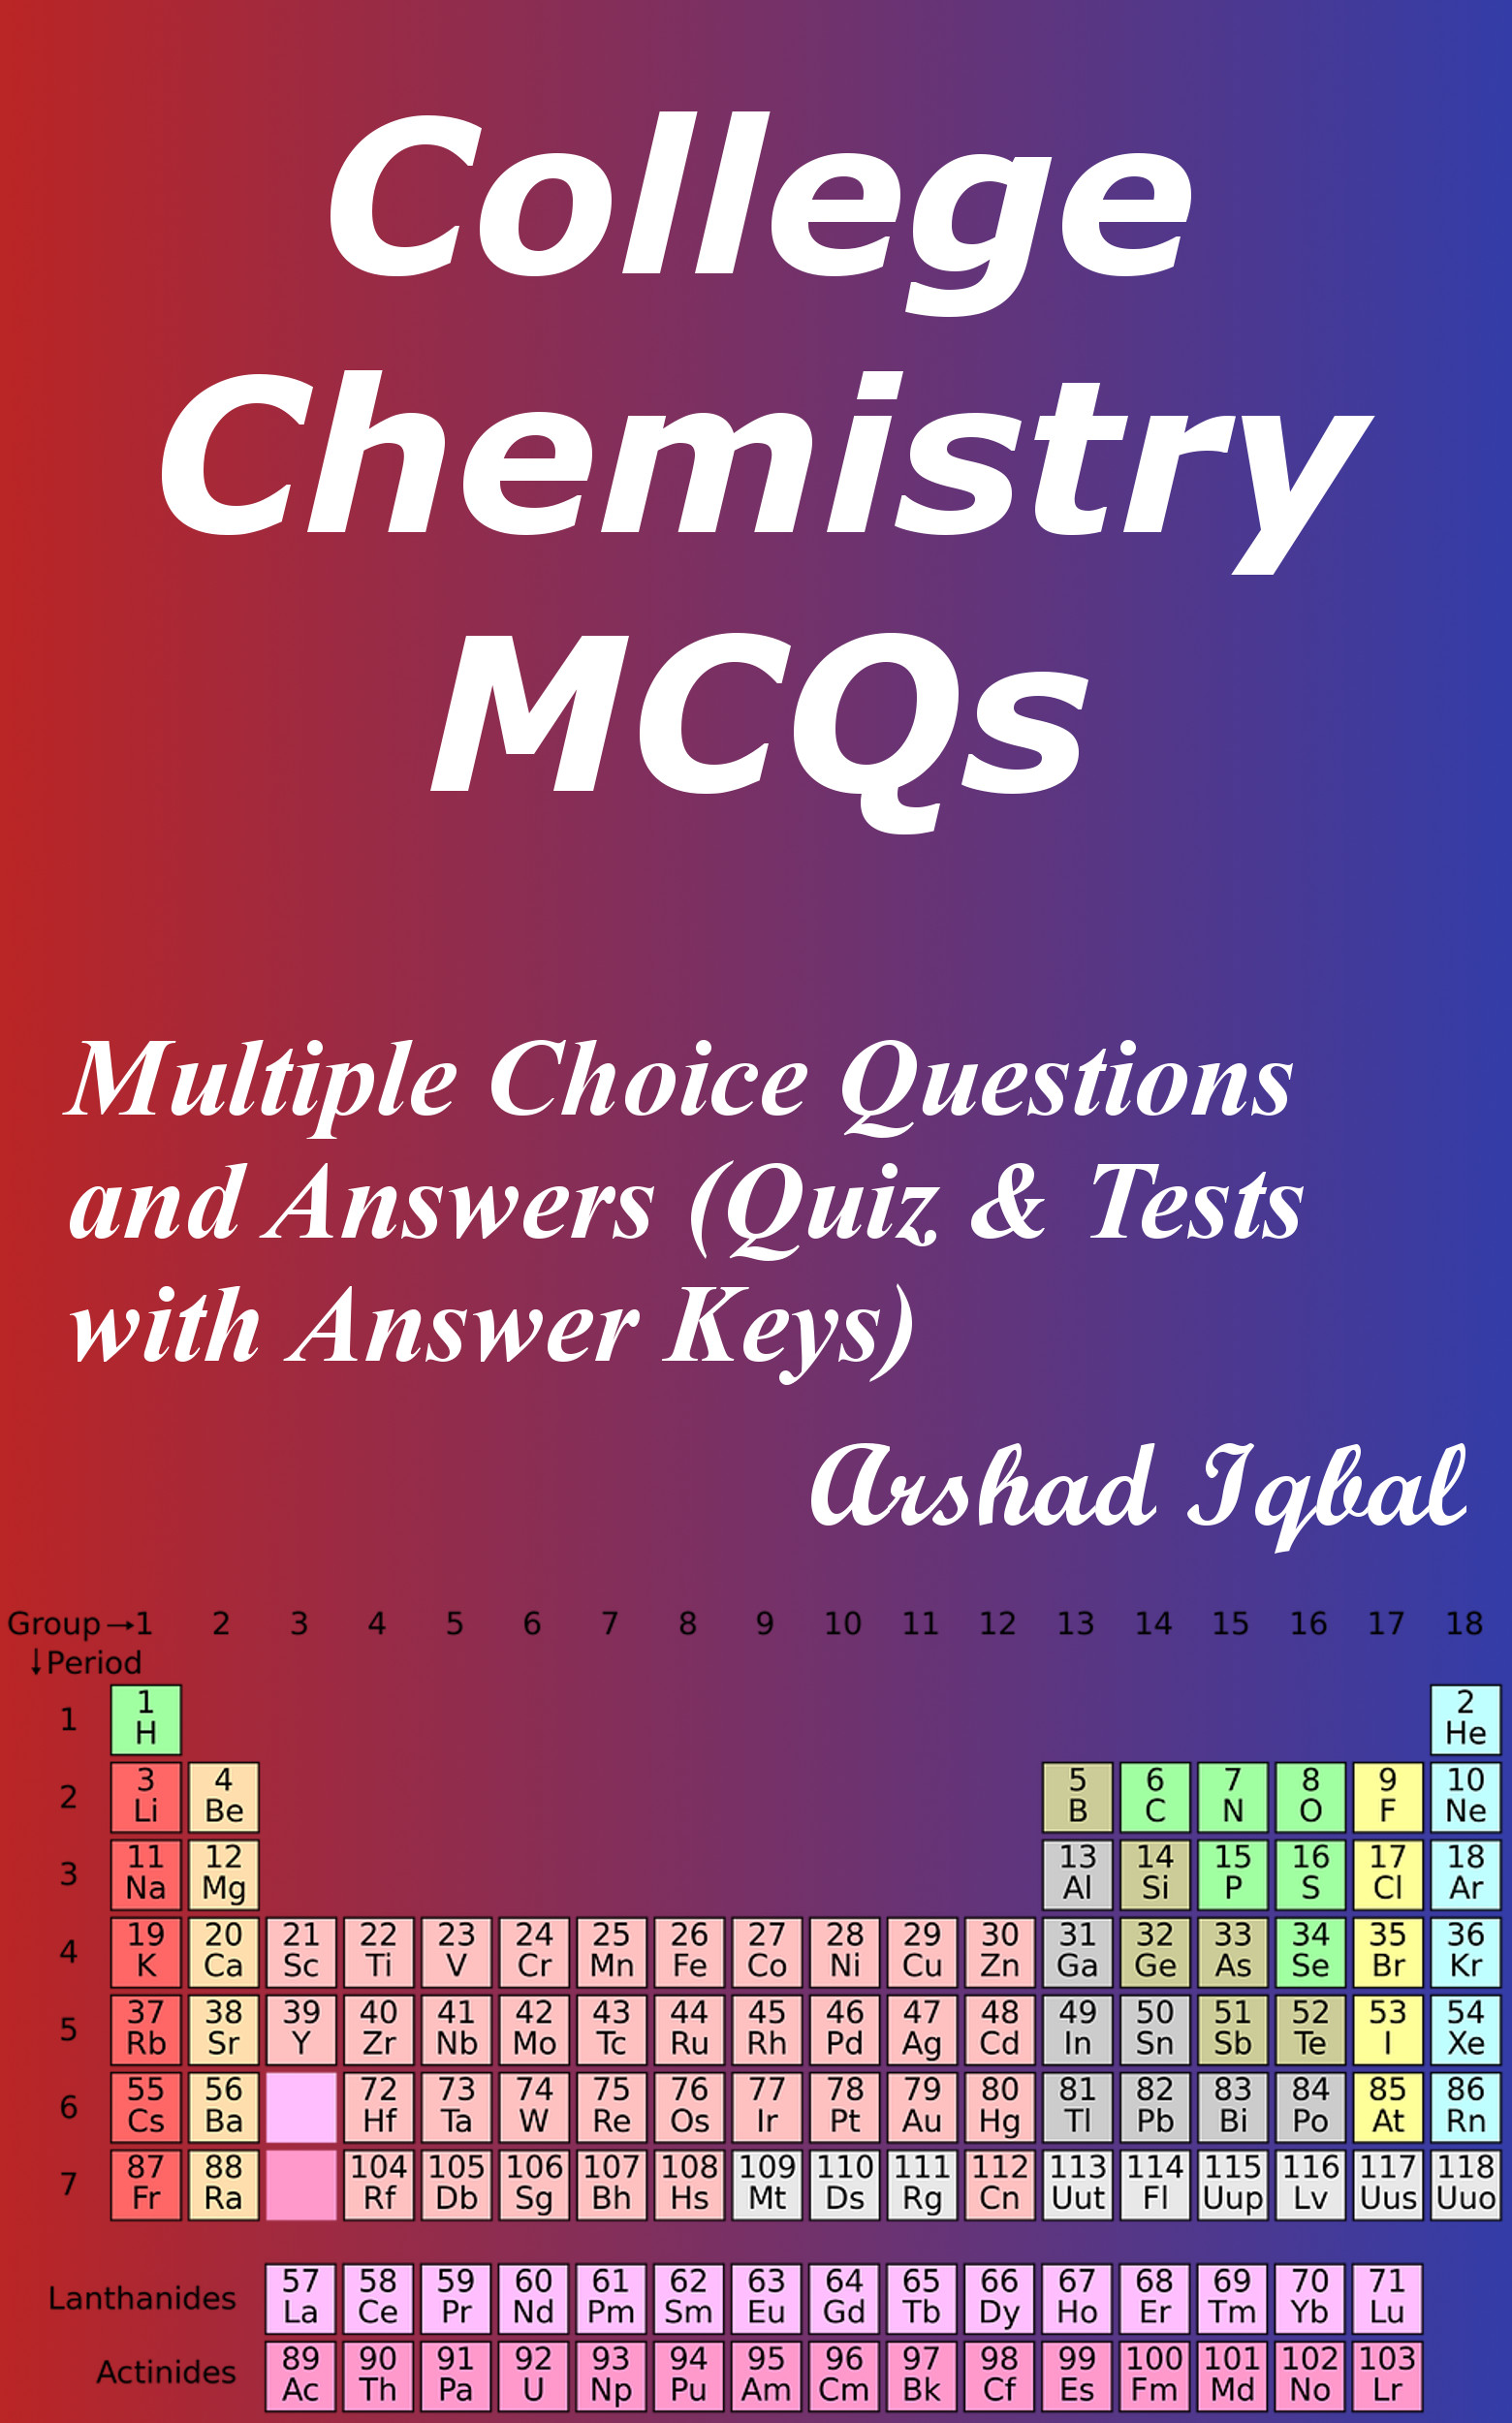 College Chemistry MCQs: Multiple Choice Questions and Answers (Quiz & Tests with Answer Keys)